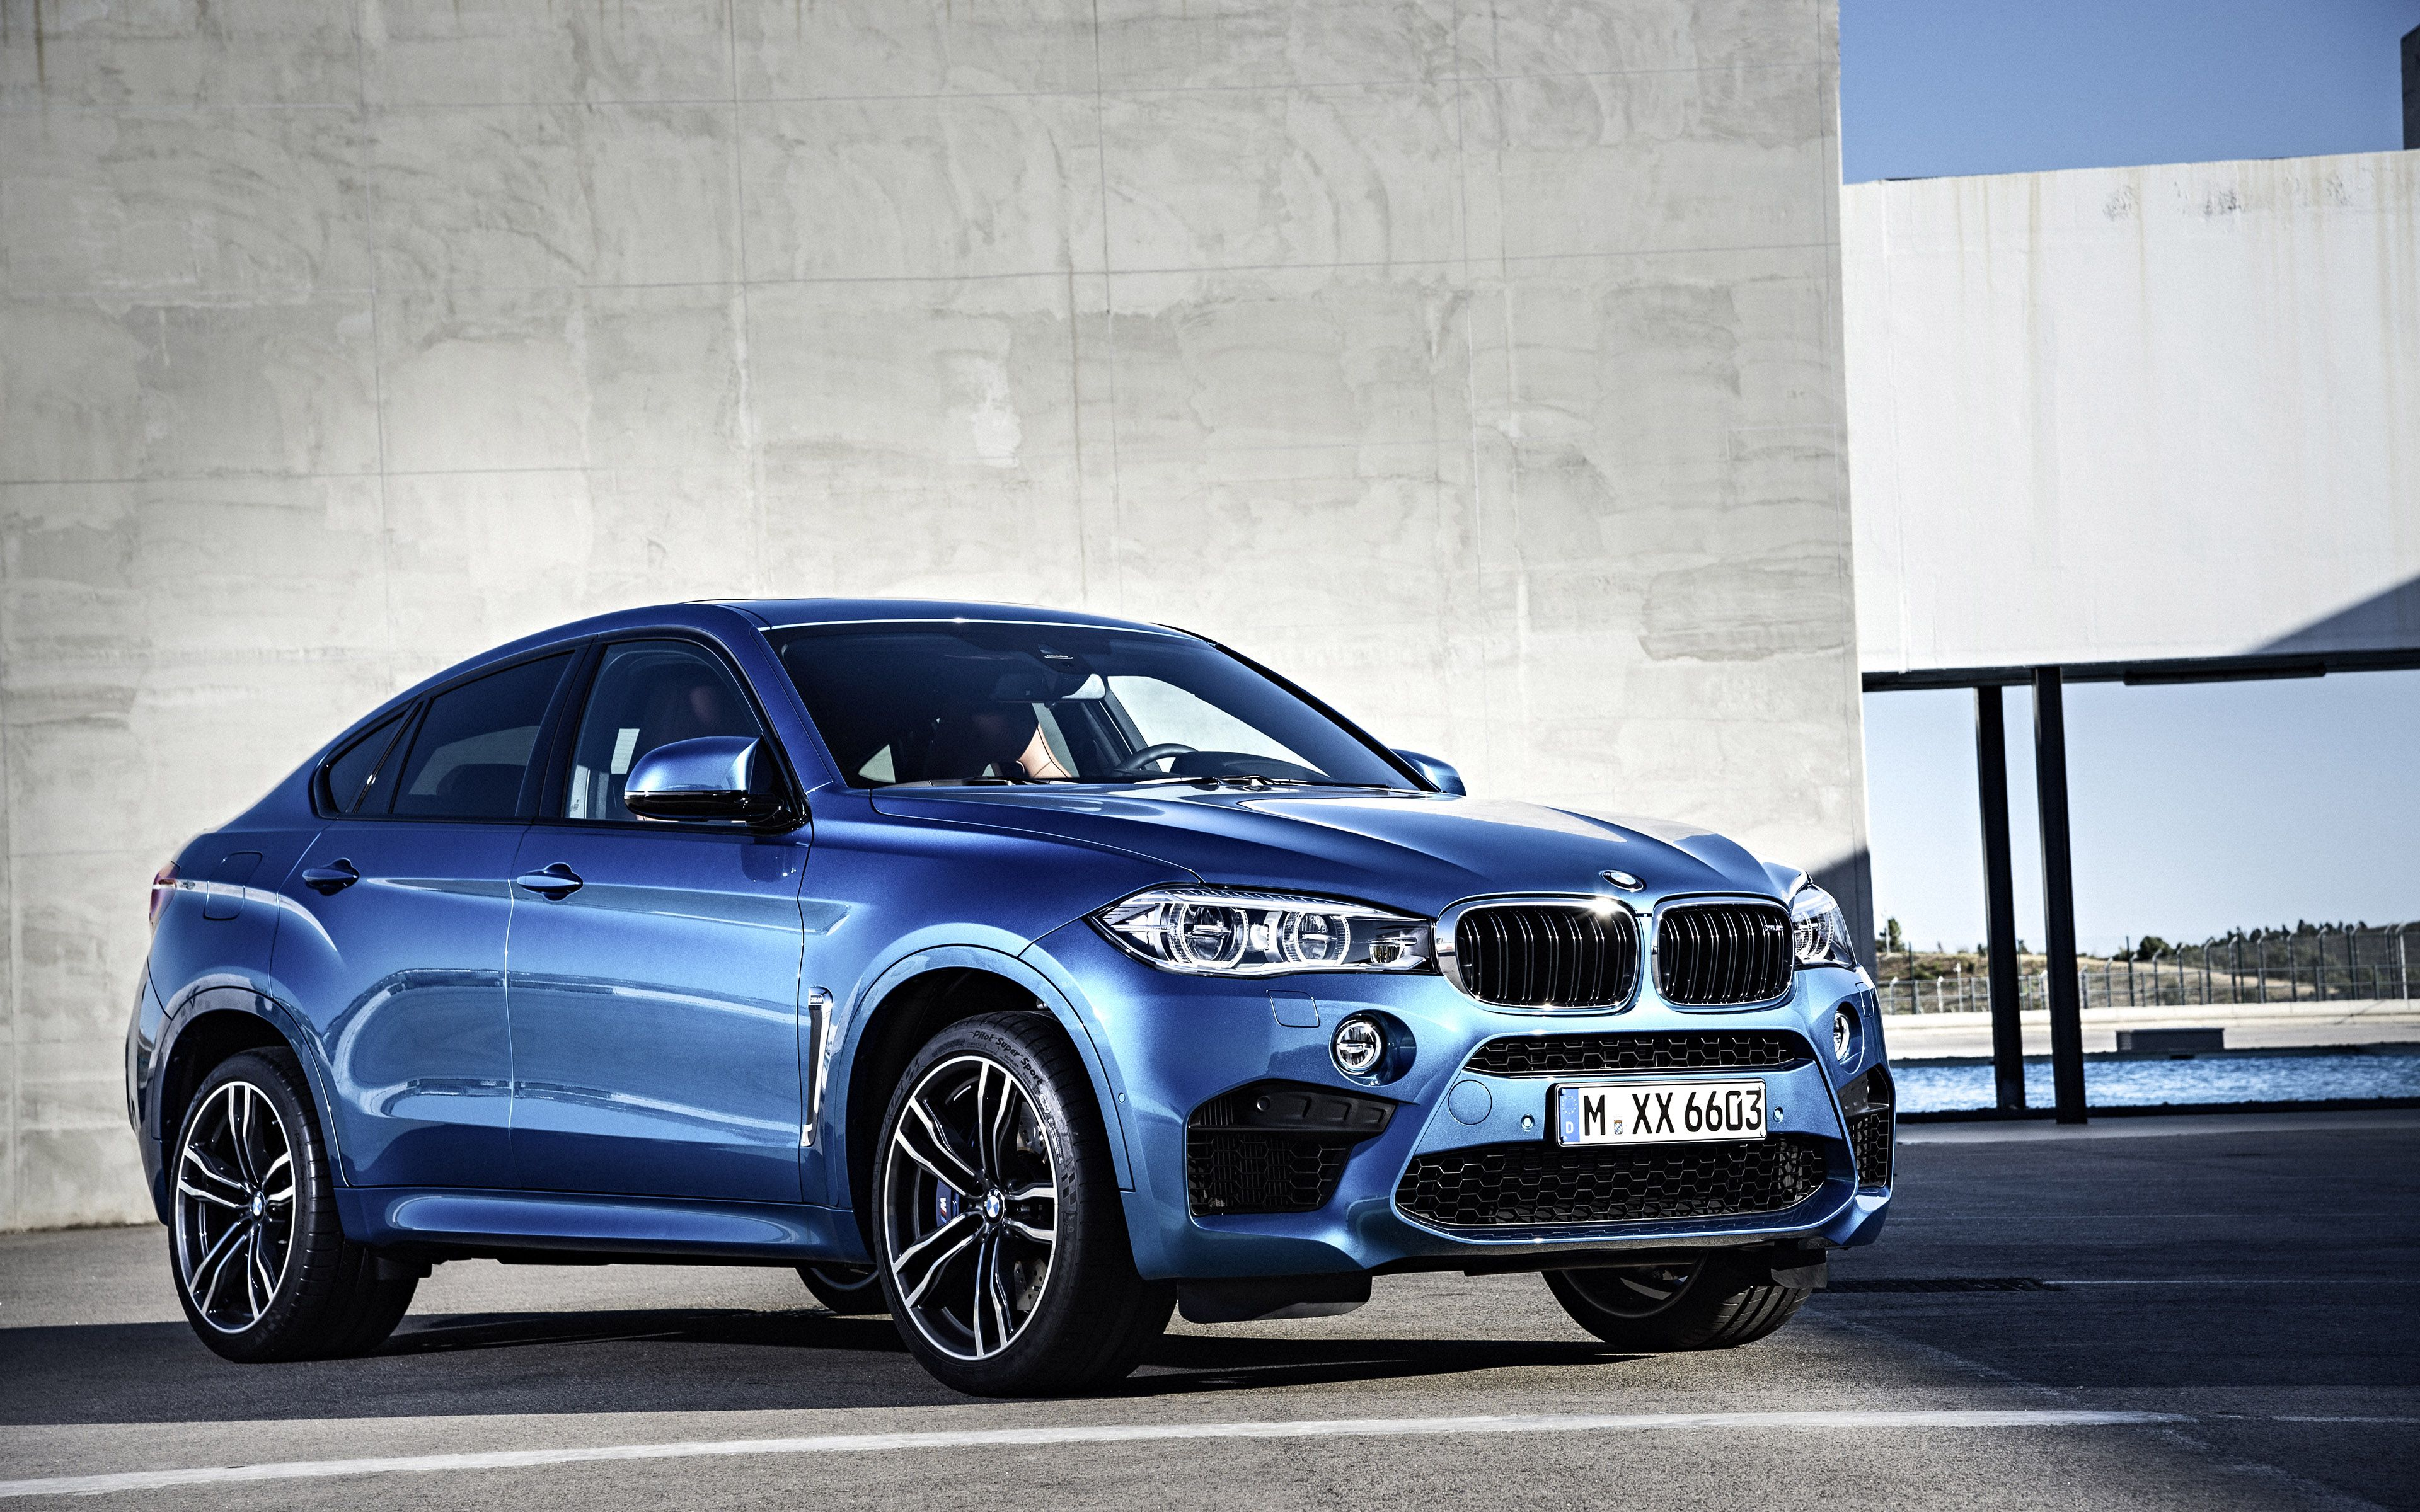 Bmw X6 Wallpapers Top Free Bmw X6 Backgrounds Wallpaperaccess